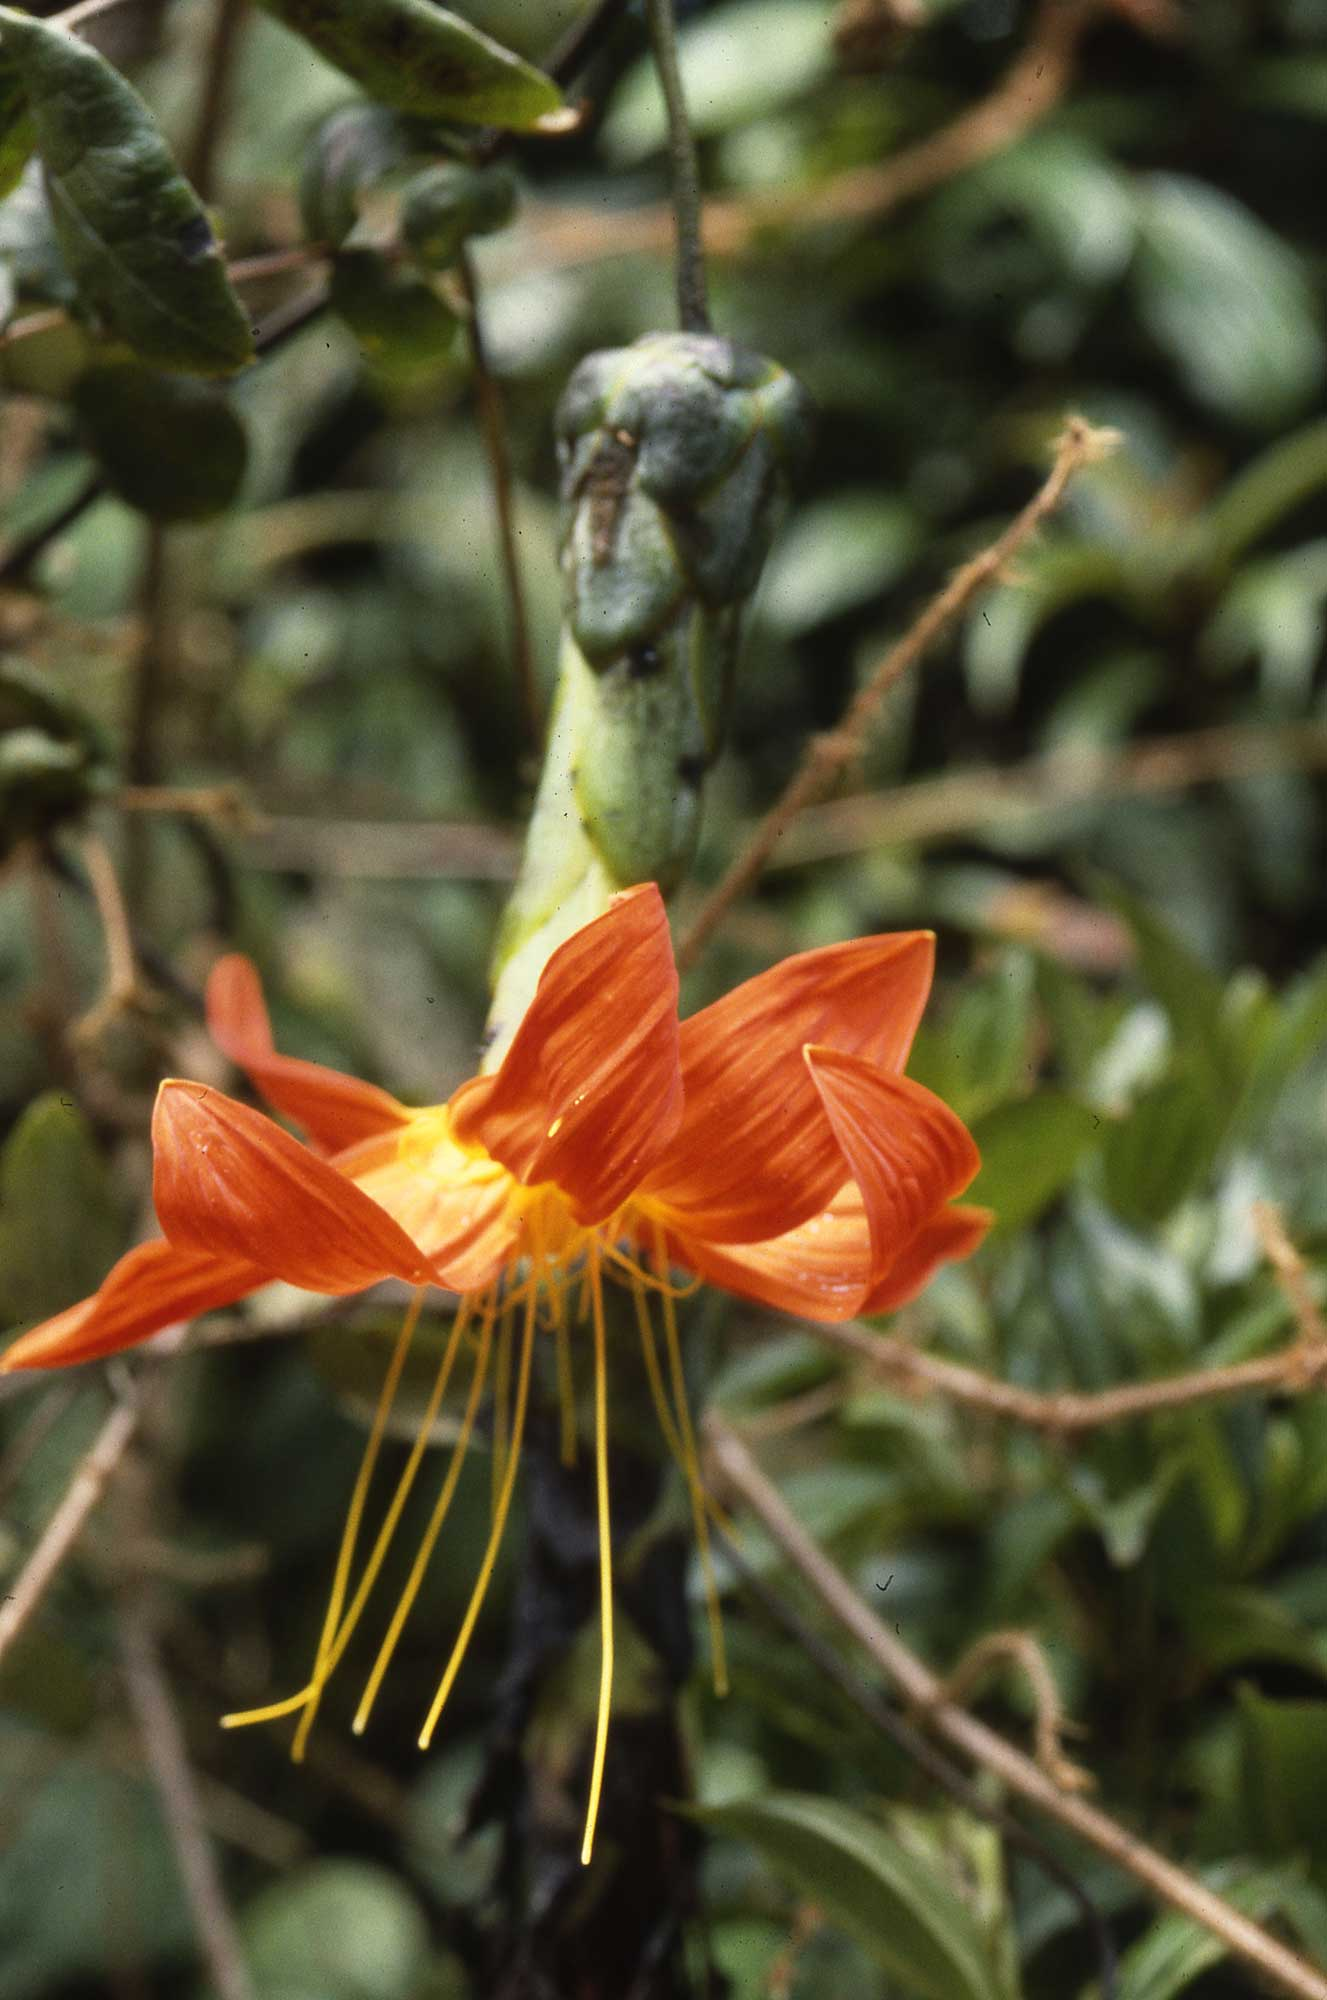 Mutisia magnifica, a flowering plant restricted to Ecuador. It is a member of the Asteraceae family, the second-most-diverse plant family in the Americas. Image credit: C. Ulloa